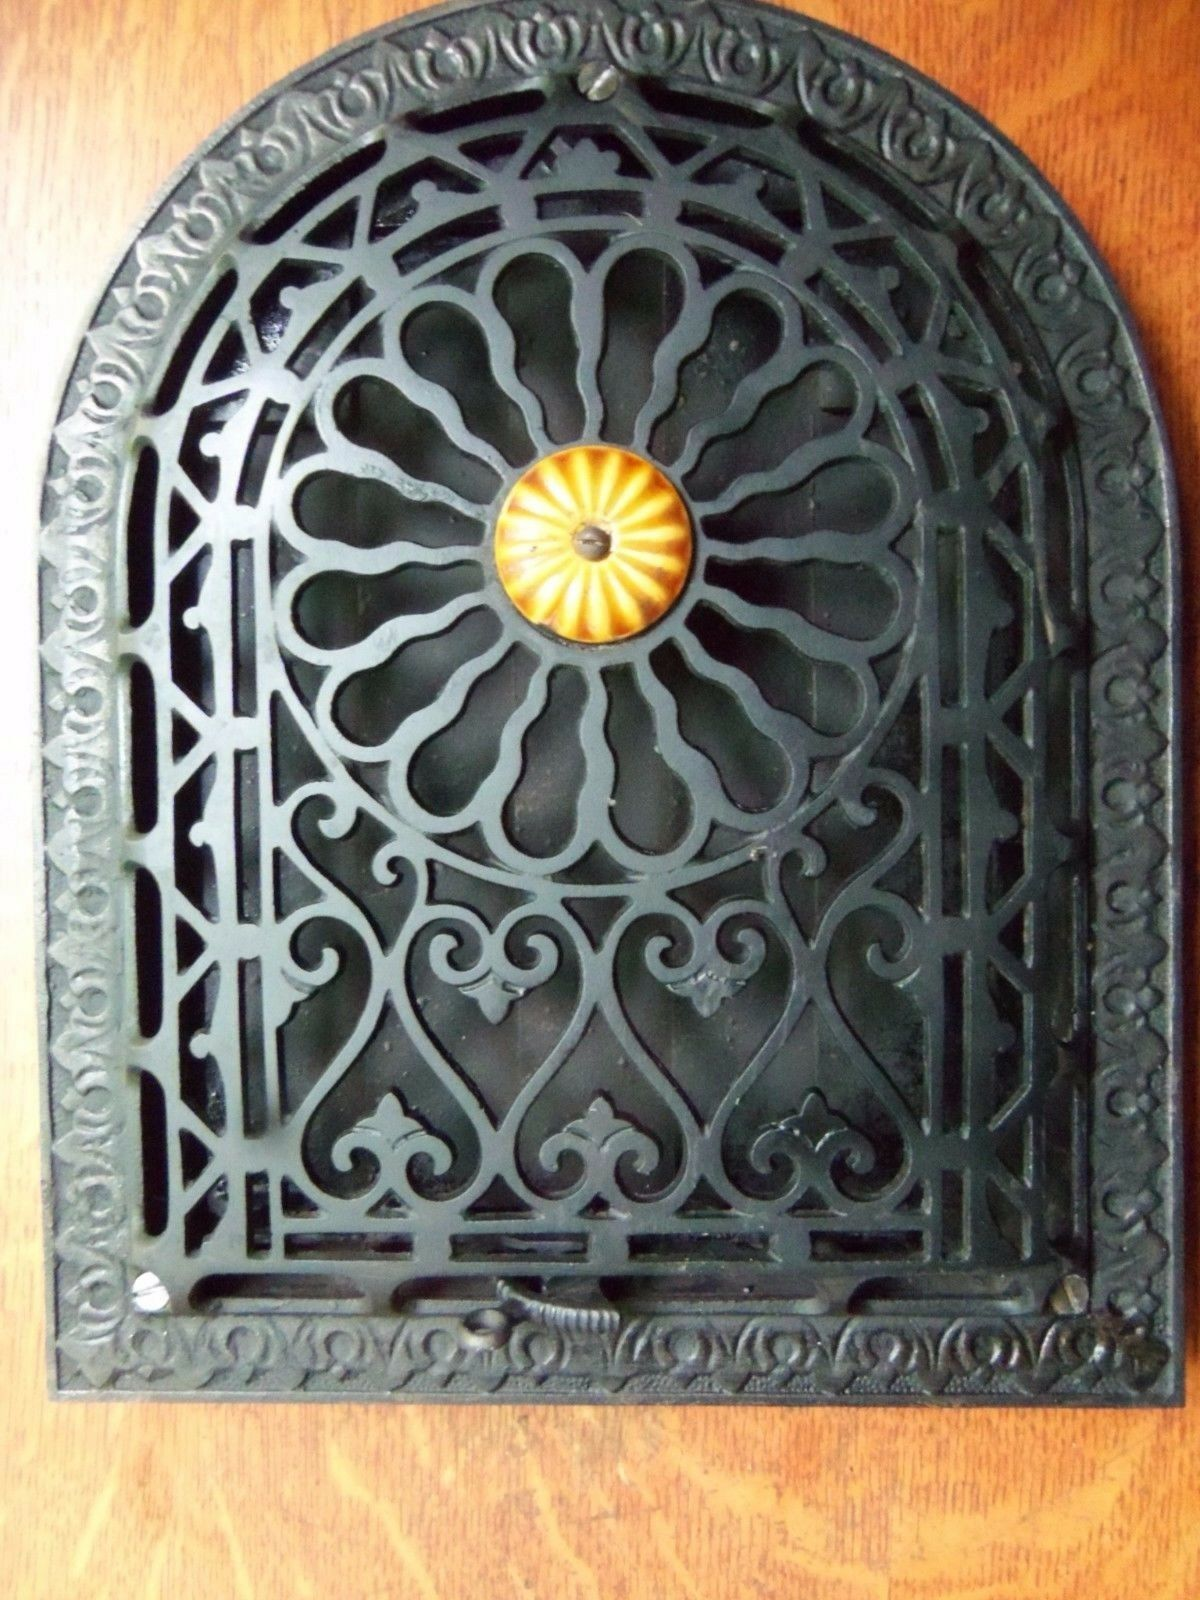 Antique Victorian Heater Vent Grate or Cover & Louvers - Restored - c1895